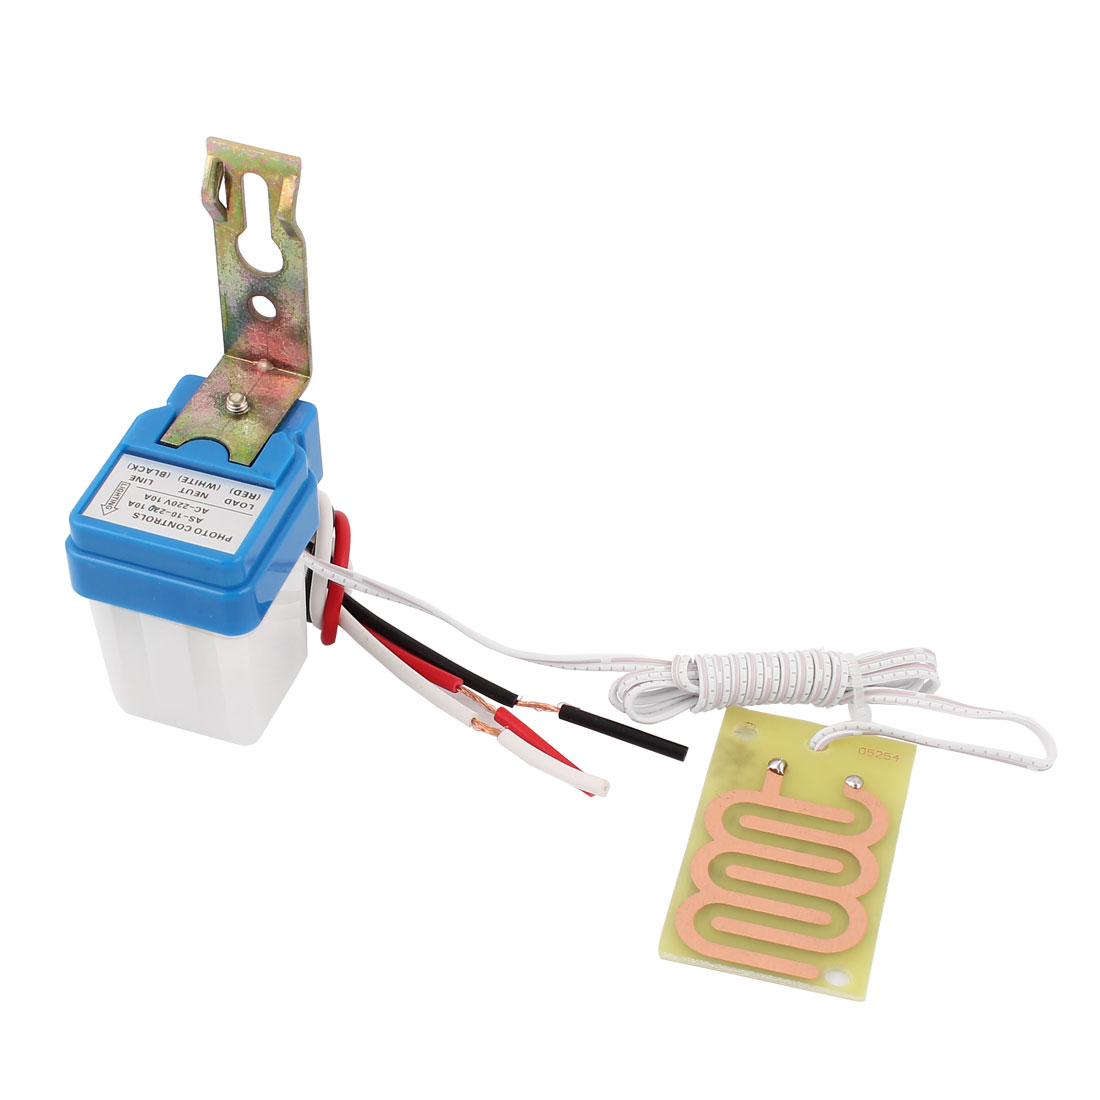 AC220V 10A Rain Detector Controller Auto On Off Raindrop Sensor Switch